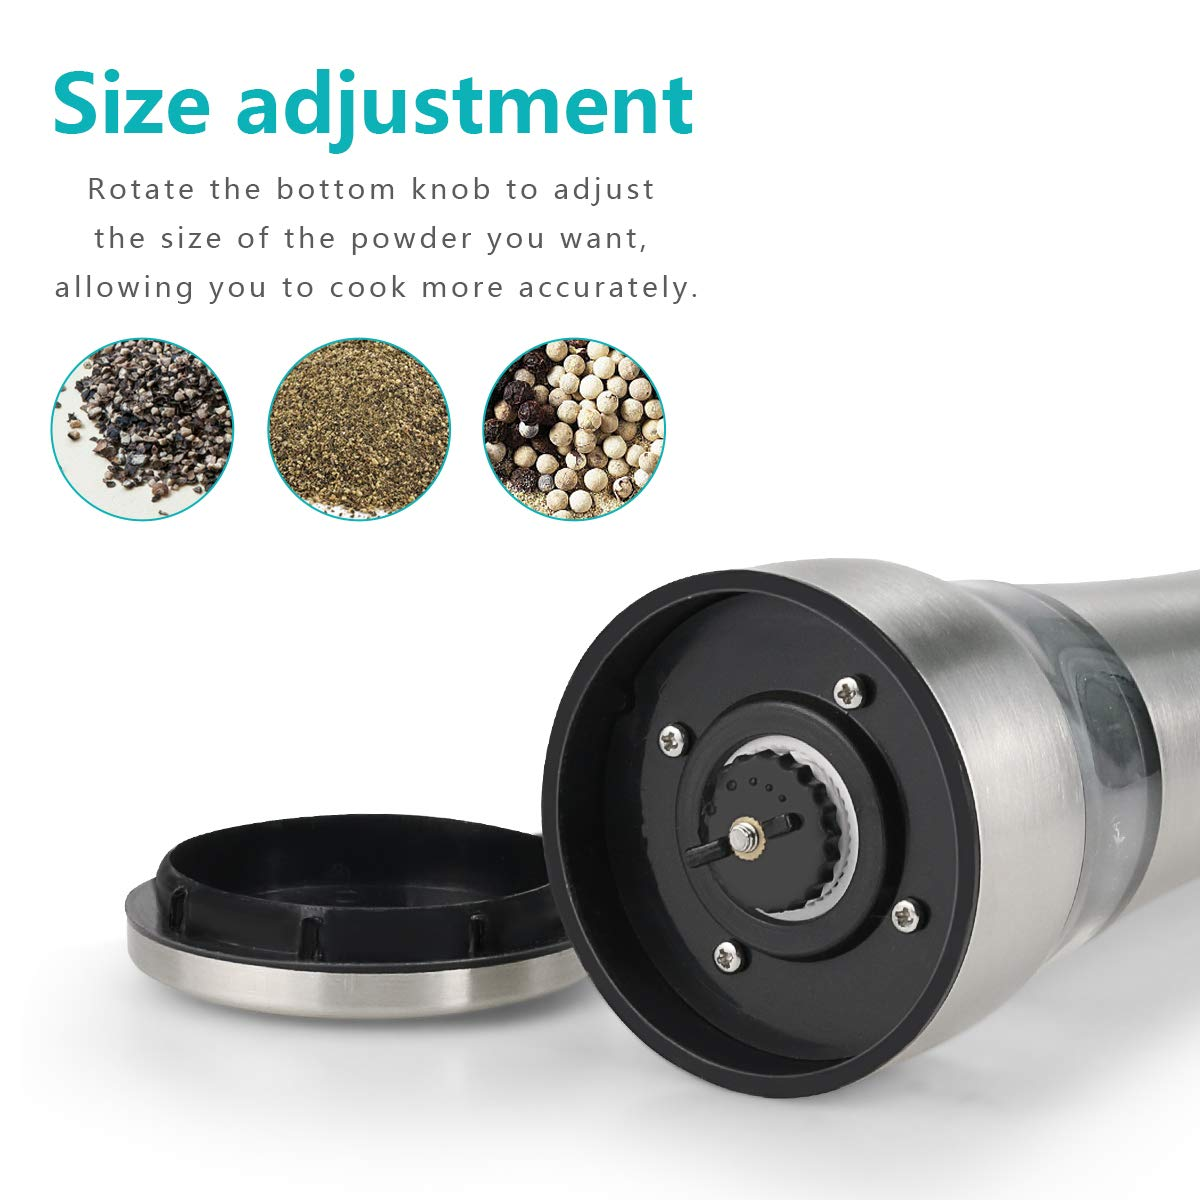 Number-One Salt Pepper Grinder Stainless Steel Pepper Mill Grinder Adjustable Coarseness Spice Sea Salts Pepper Grinder with Durable Ceramic Rotor and Protection Cap Suitable for Kitchen BBQ Picnic